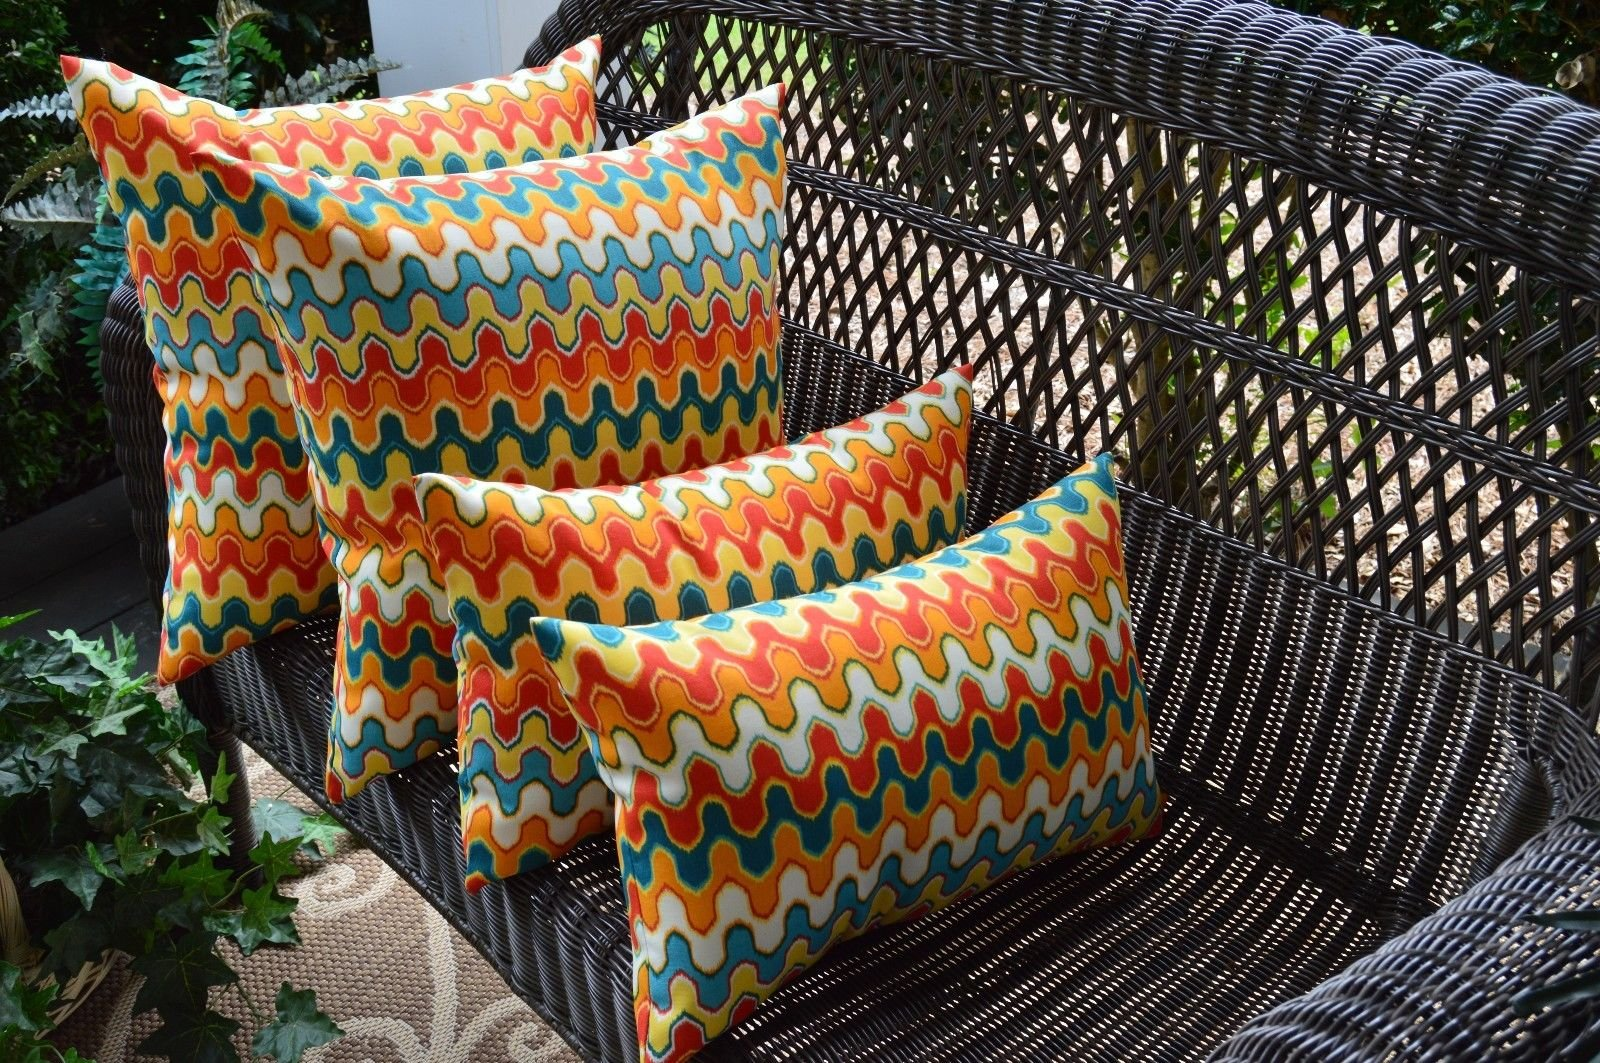 Resort Spa Home Decor Set of 4 Square Rectangle Geometric Flame Stitch Red Orange Teal Outdoor Pillows by Resort Spa Home Decor (Image #1)